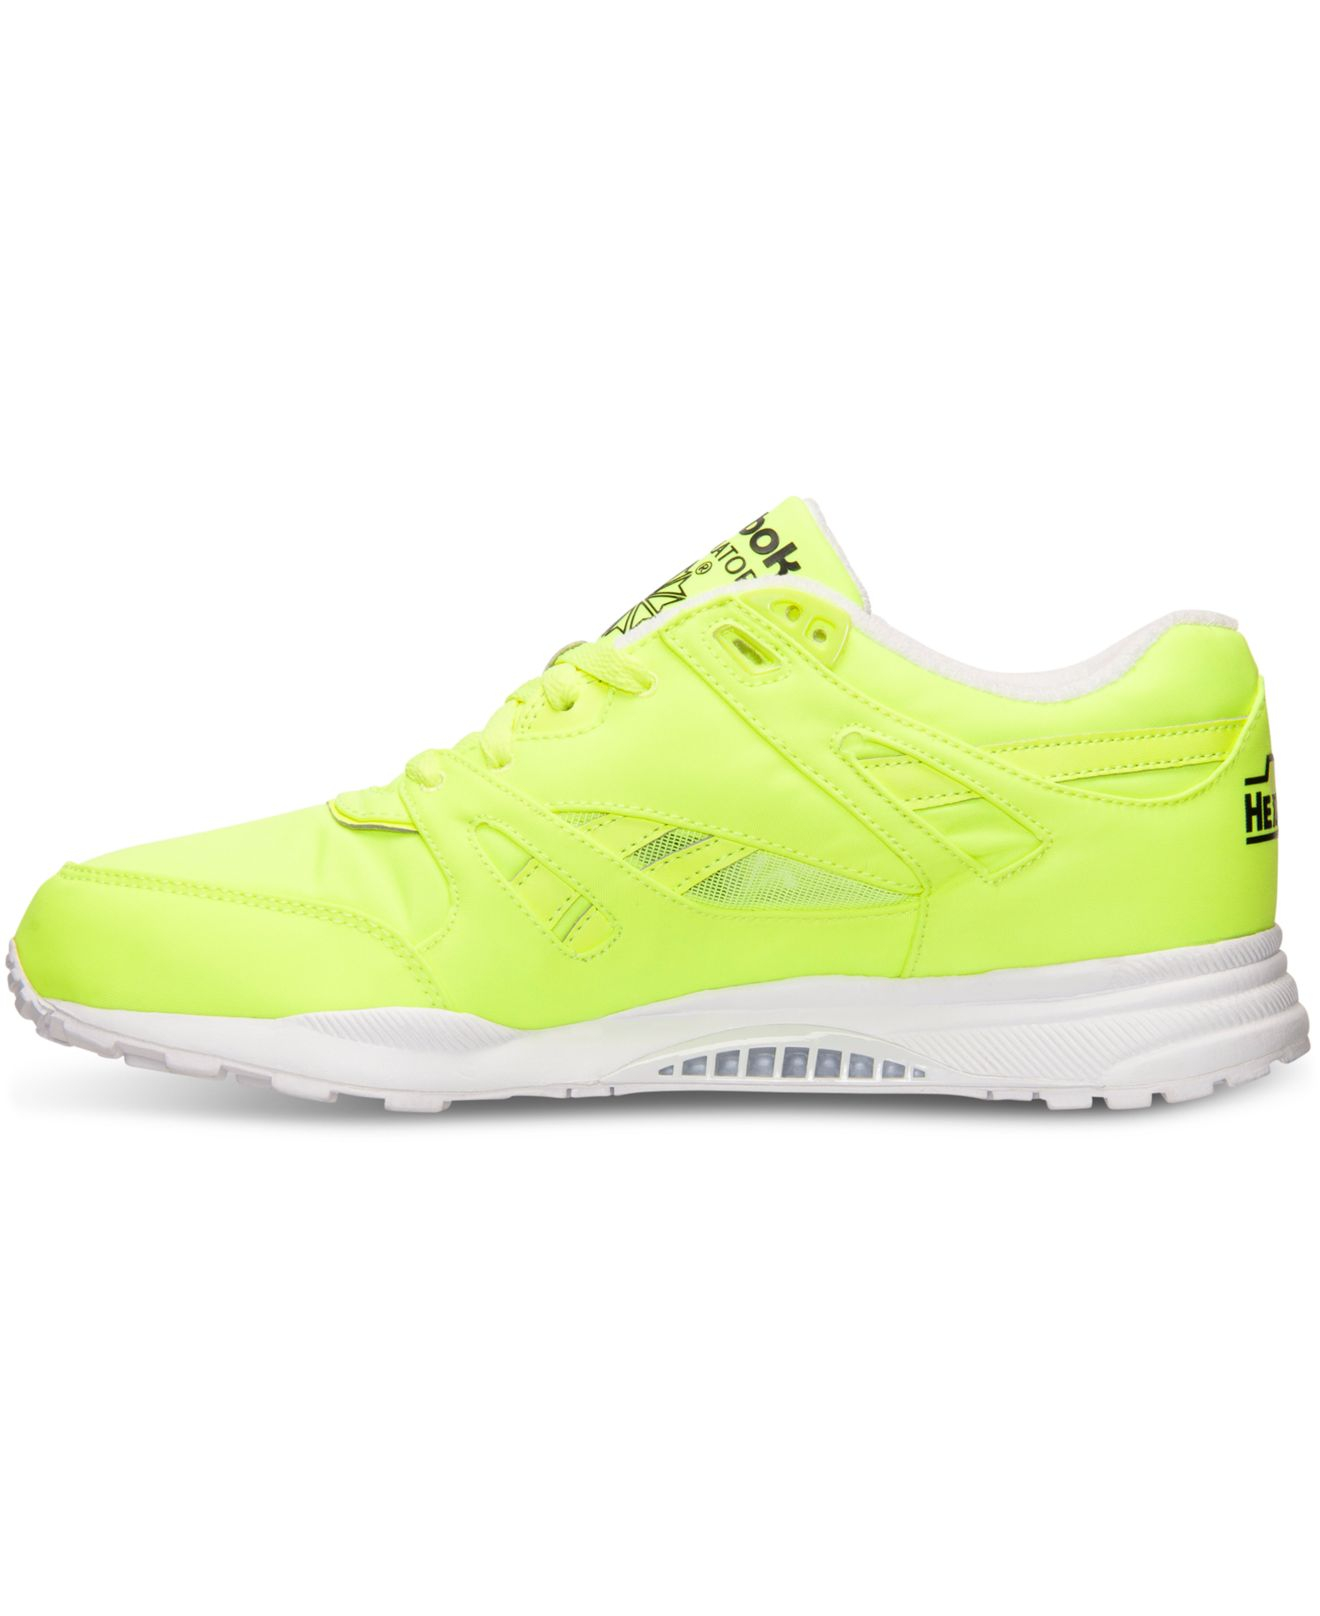 80086923f2a4 Lyst - Reebok Men s Ventilator Day Glow Casual Sneakers From Finish Line in  Yellow for Men